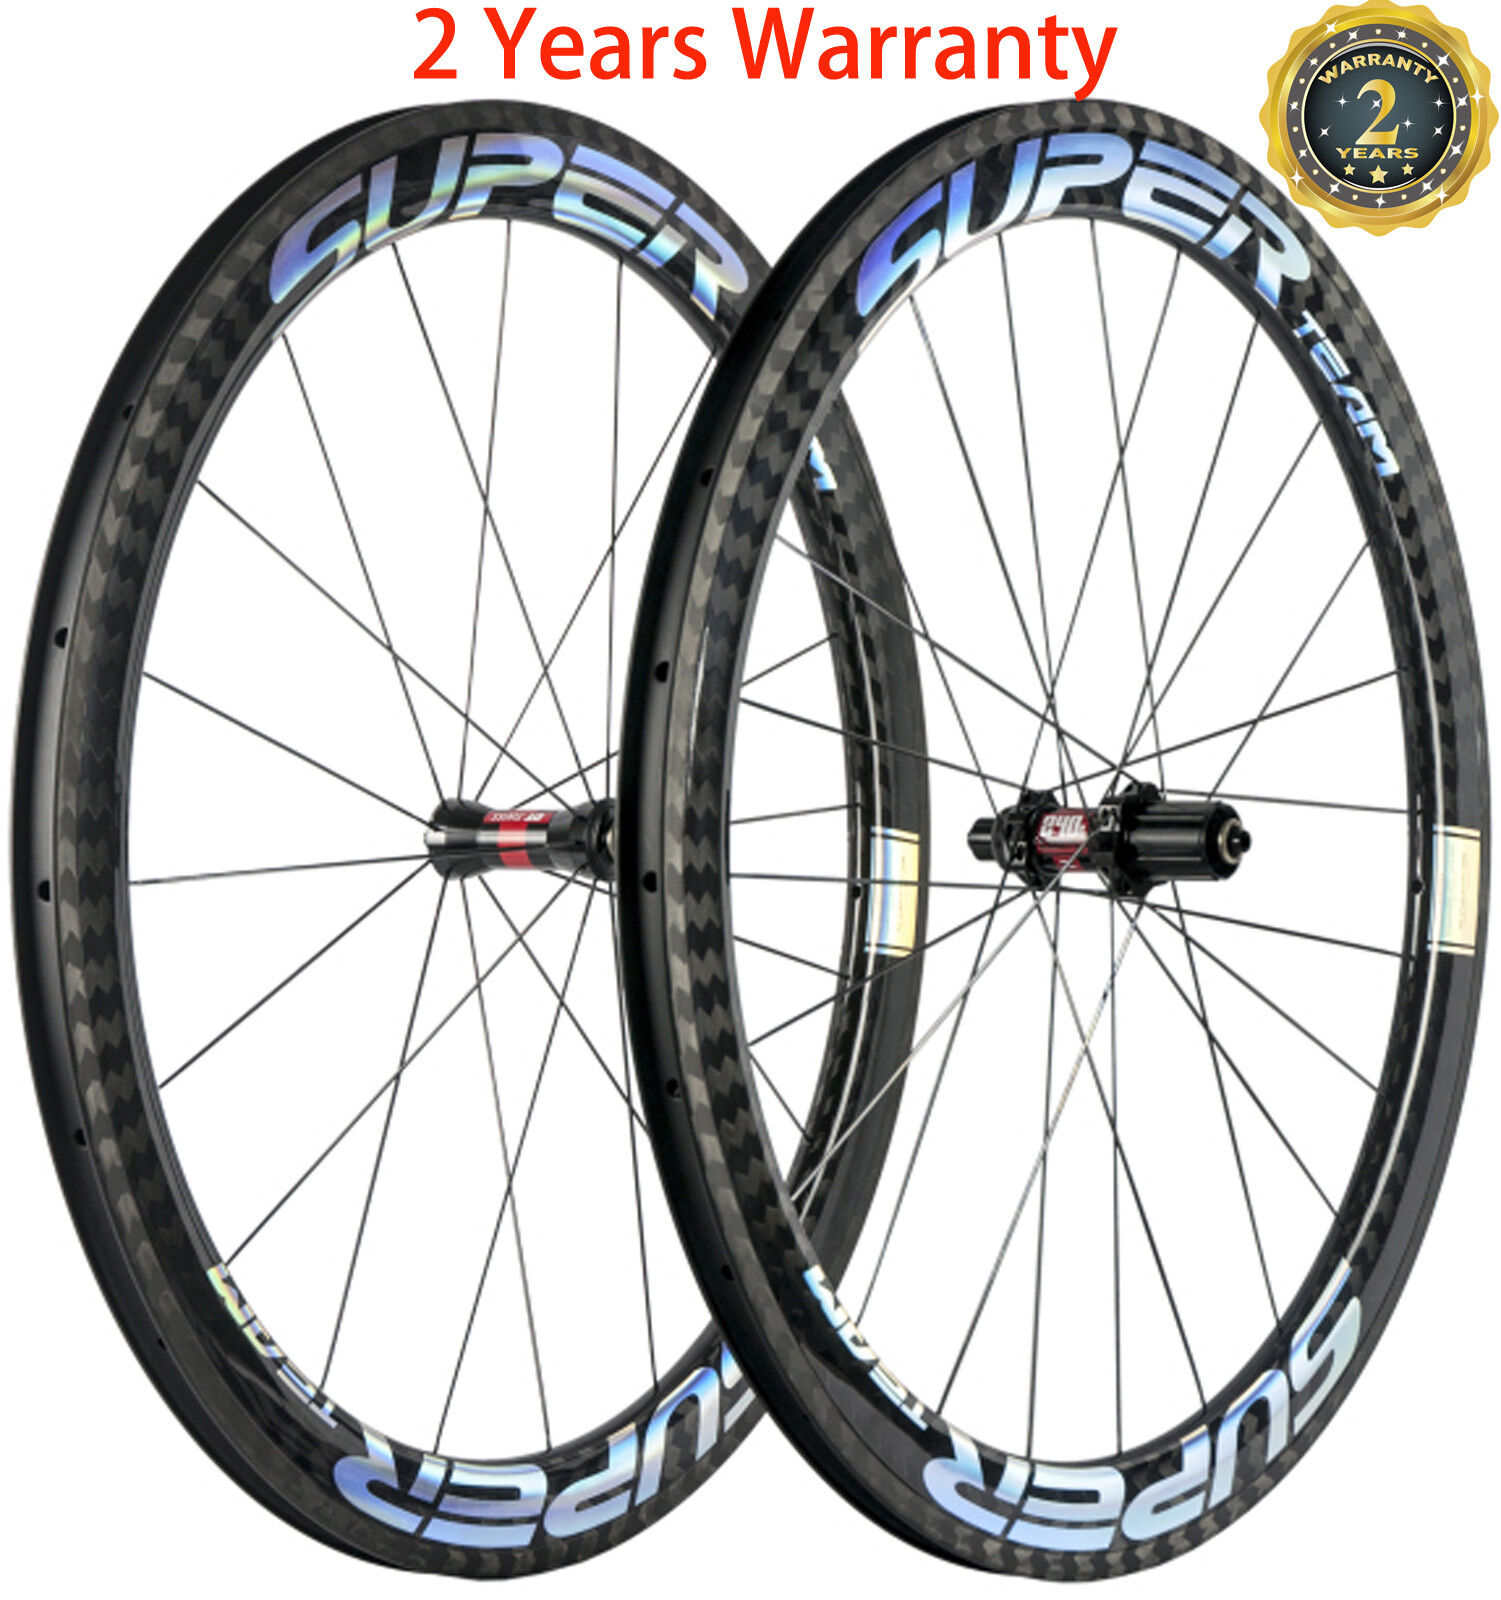 Superteam 50mm Carbon Wheels Road Bike DT240s Hub 23 25mm  Width Bicycle Wheelset  new style